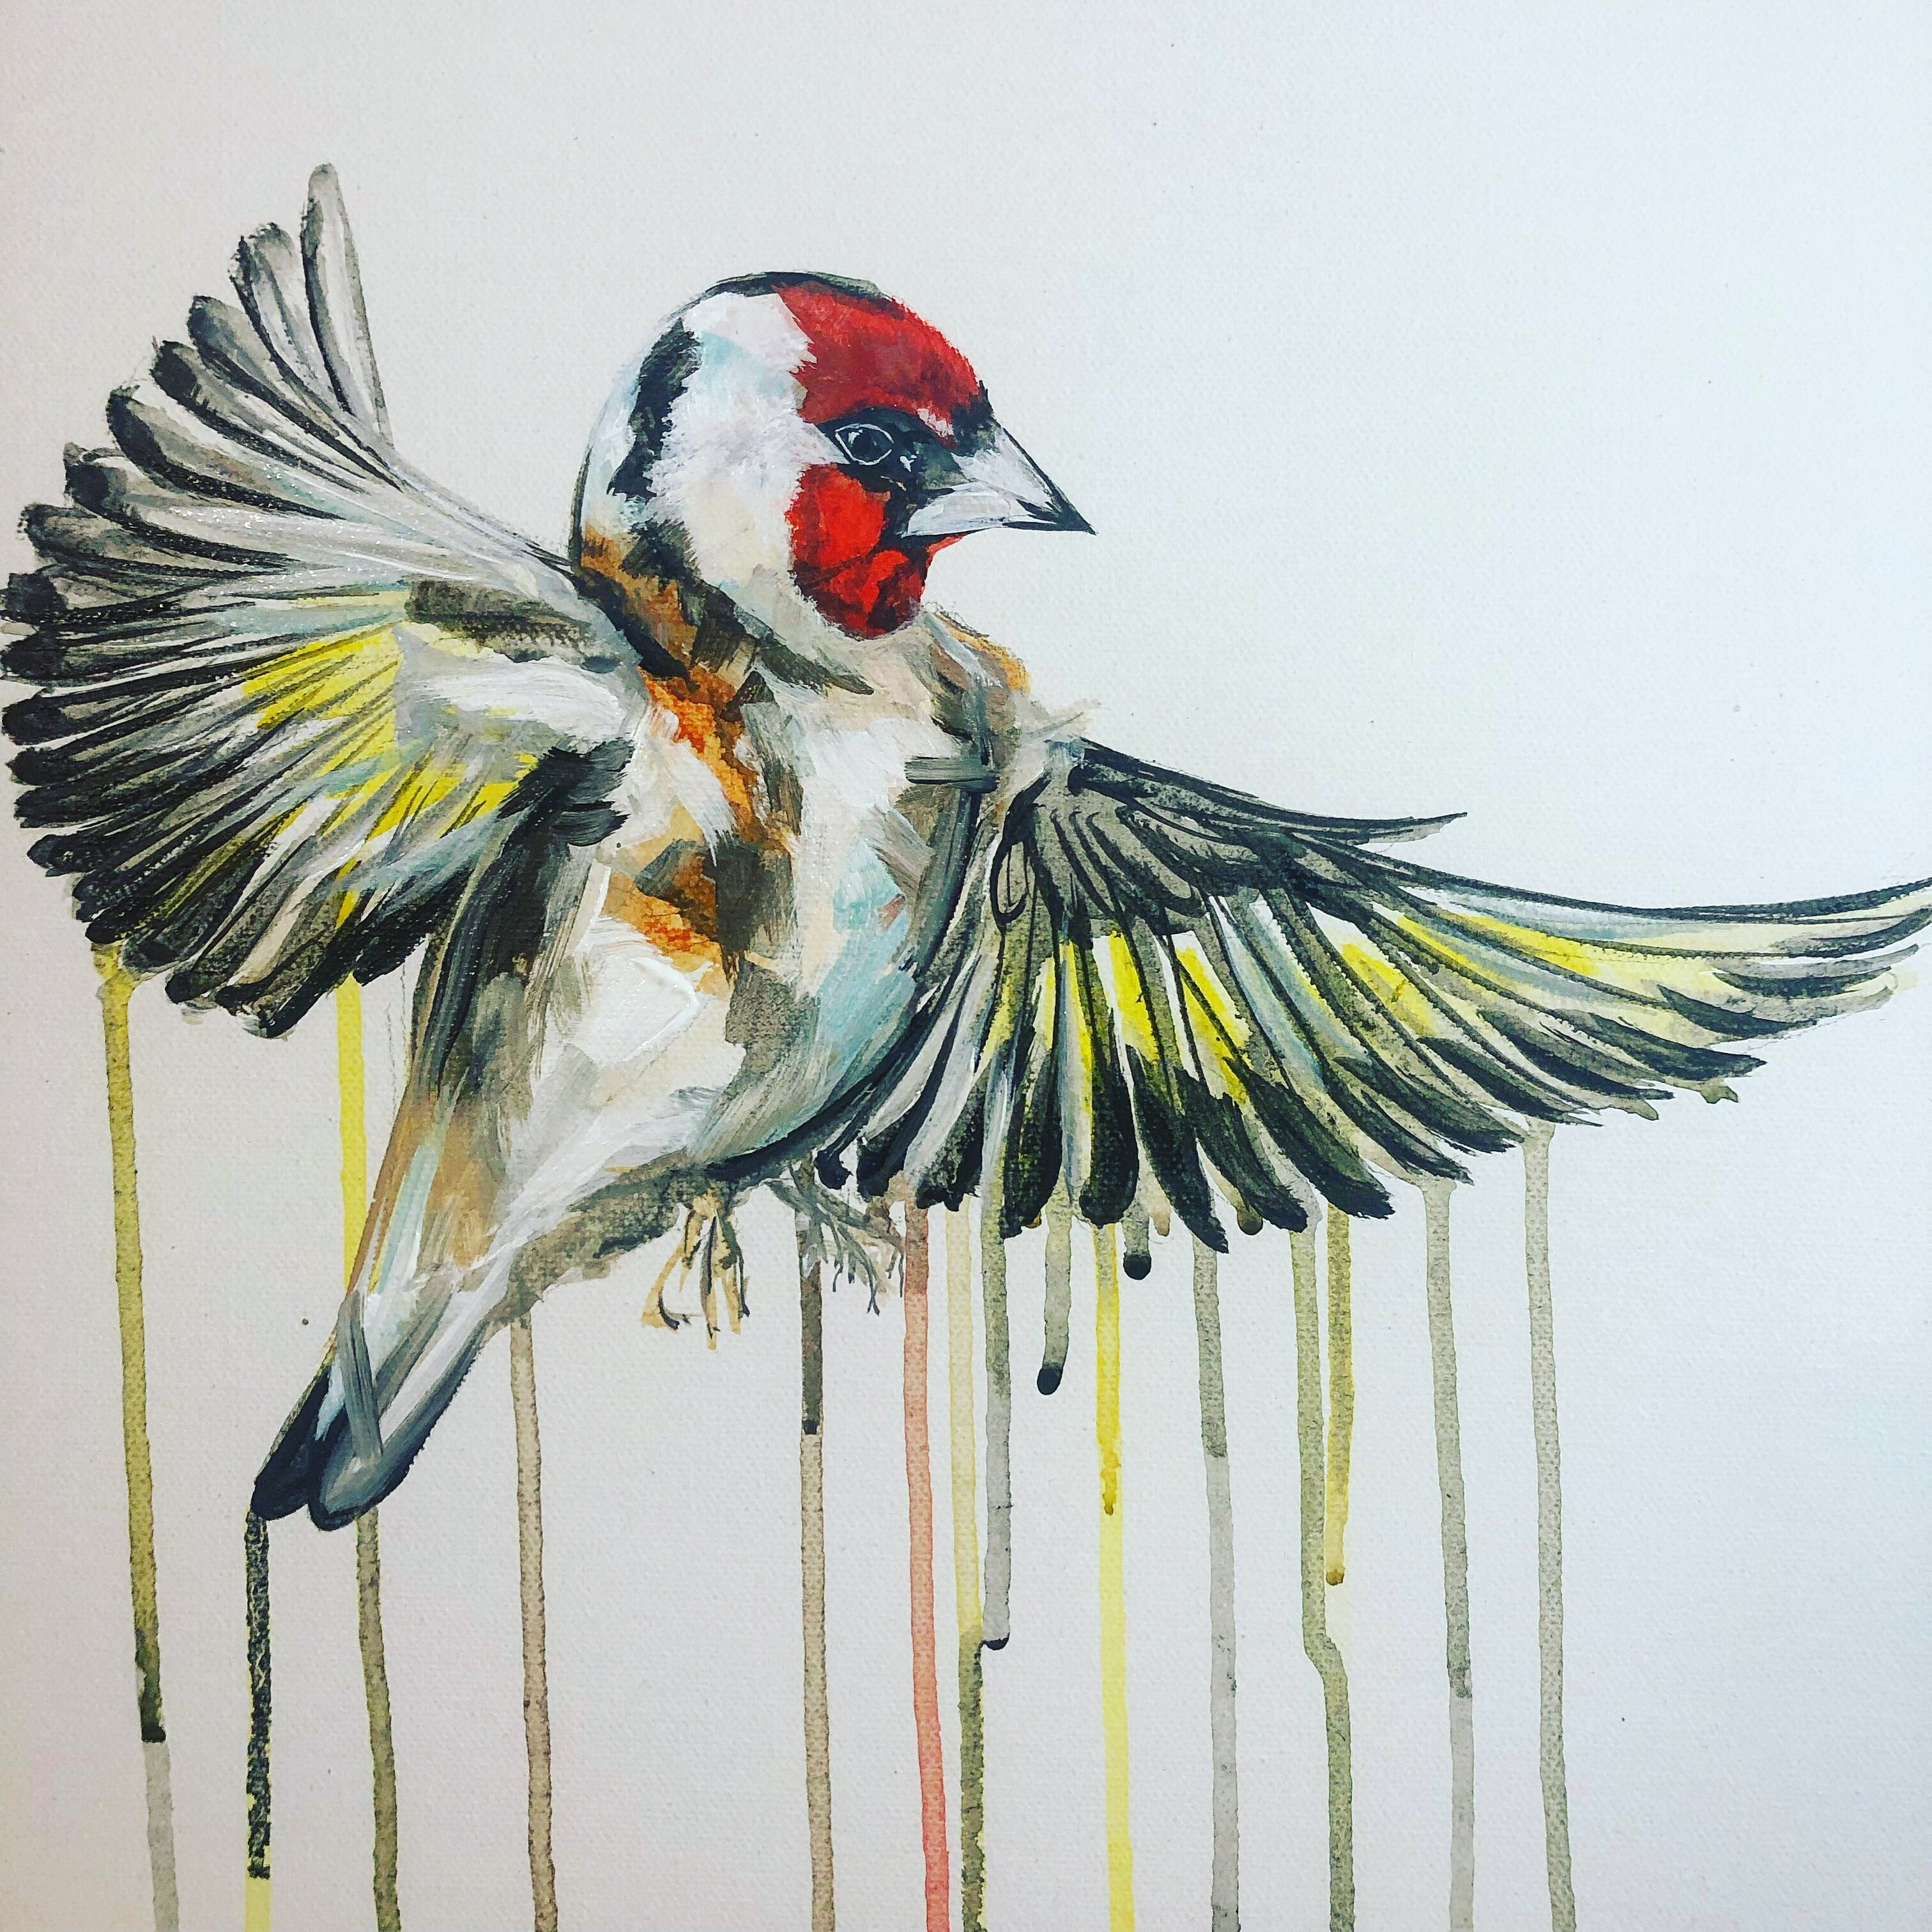 DAY47 #30minuteartchallenge GOLD FINCH